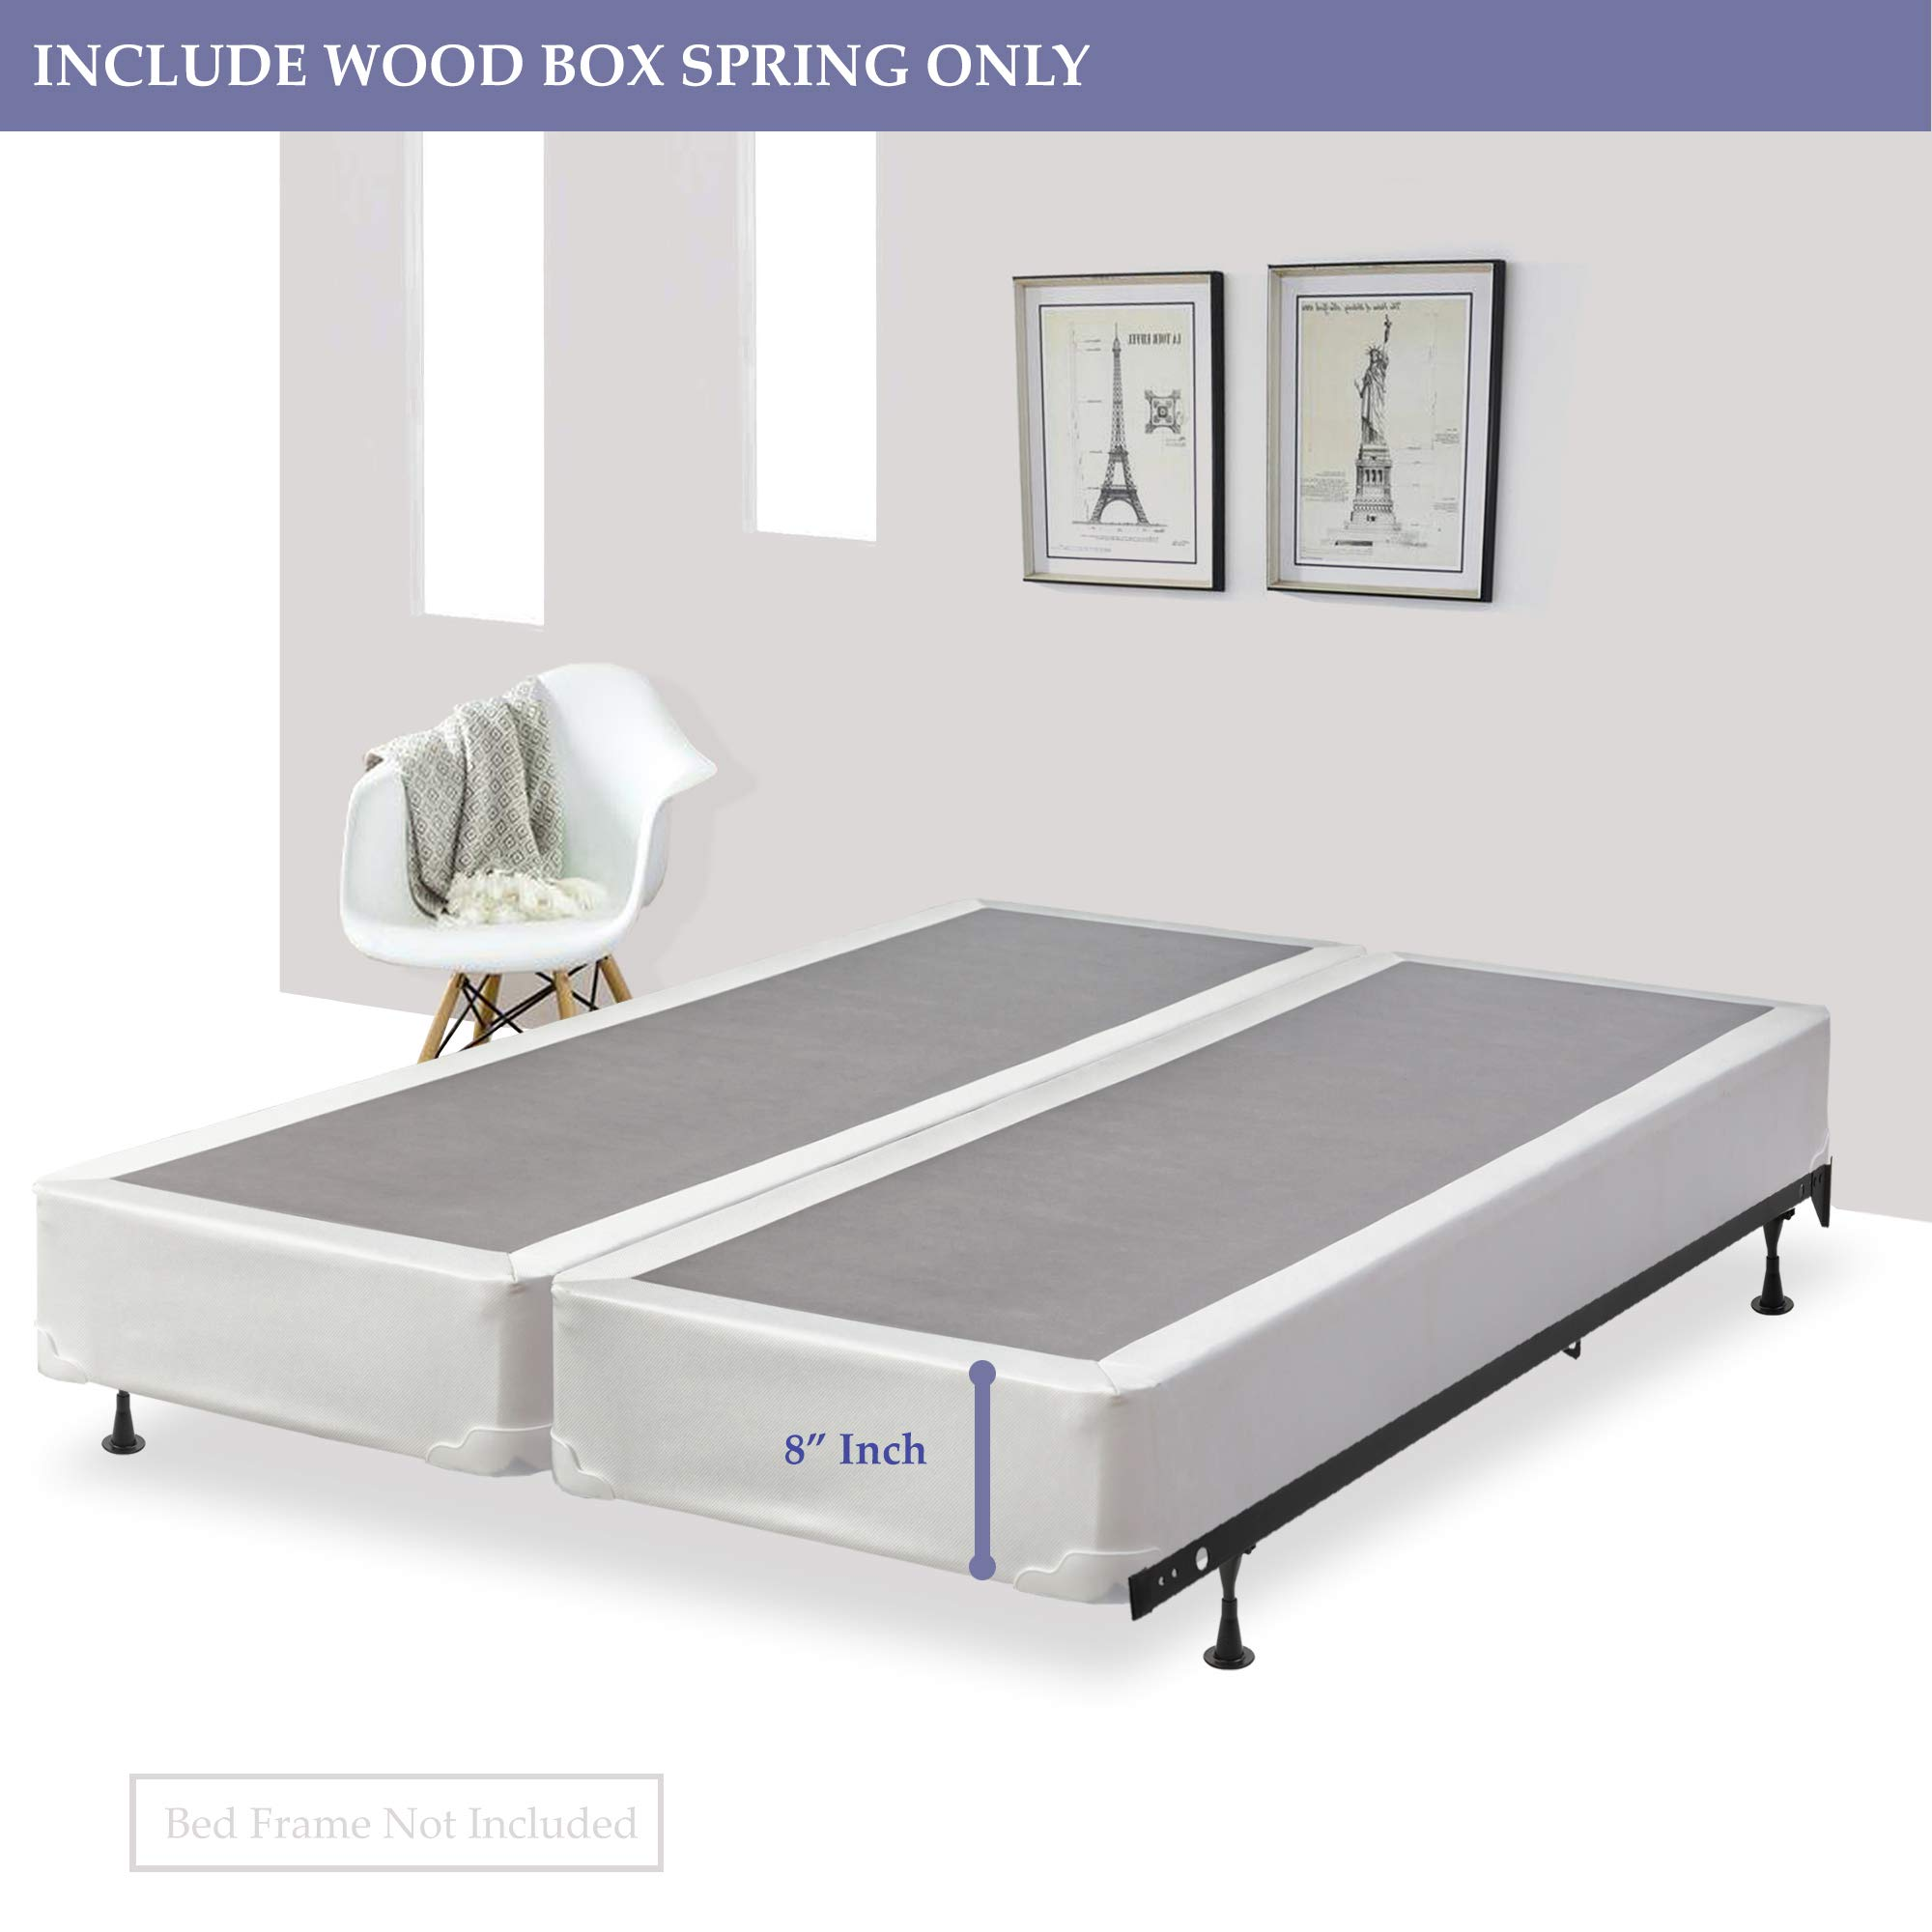 Spring Solution, 8-inch Fully Assembled Split Box Spring/Foundation for Mattress, Queen Size by Spring Solution